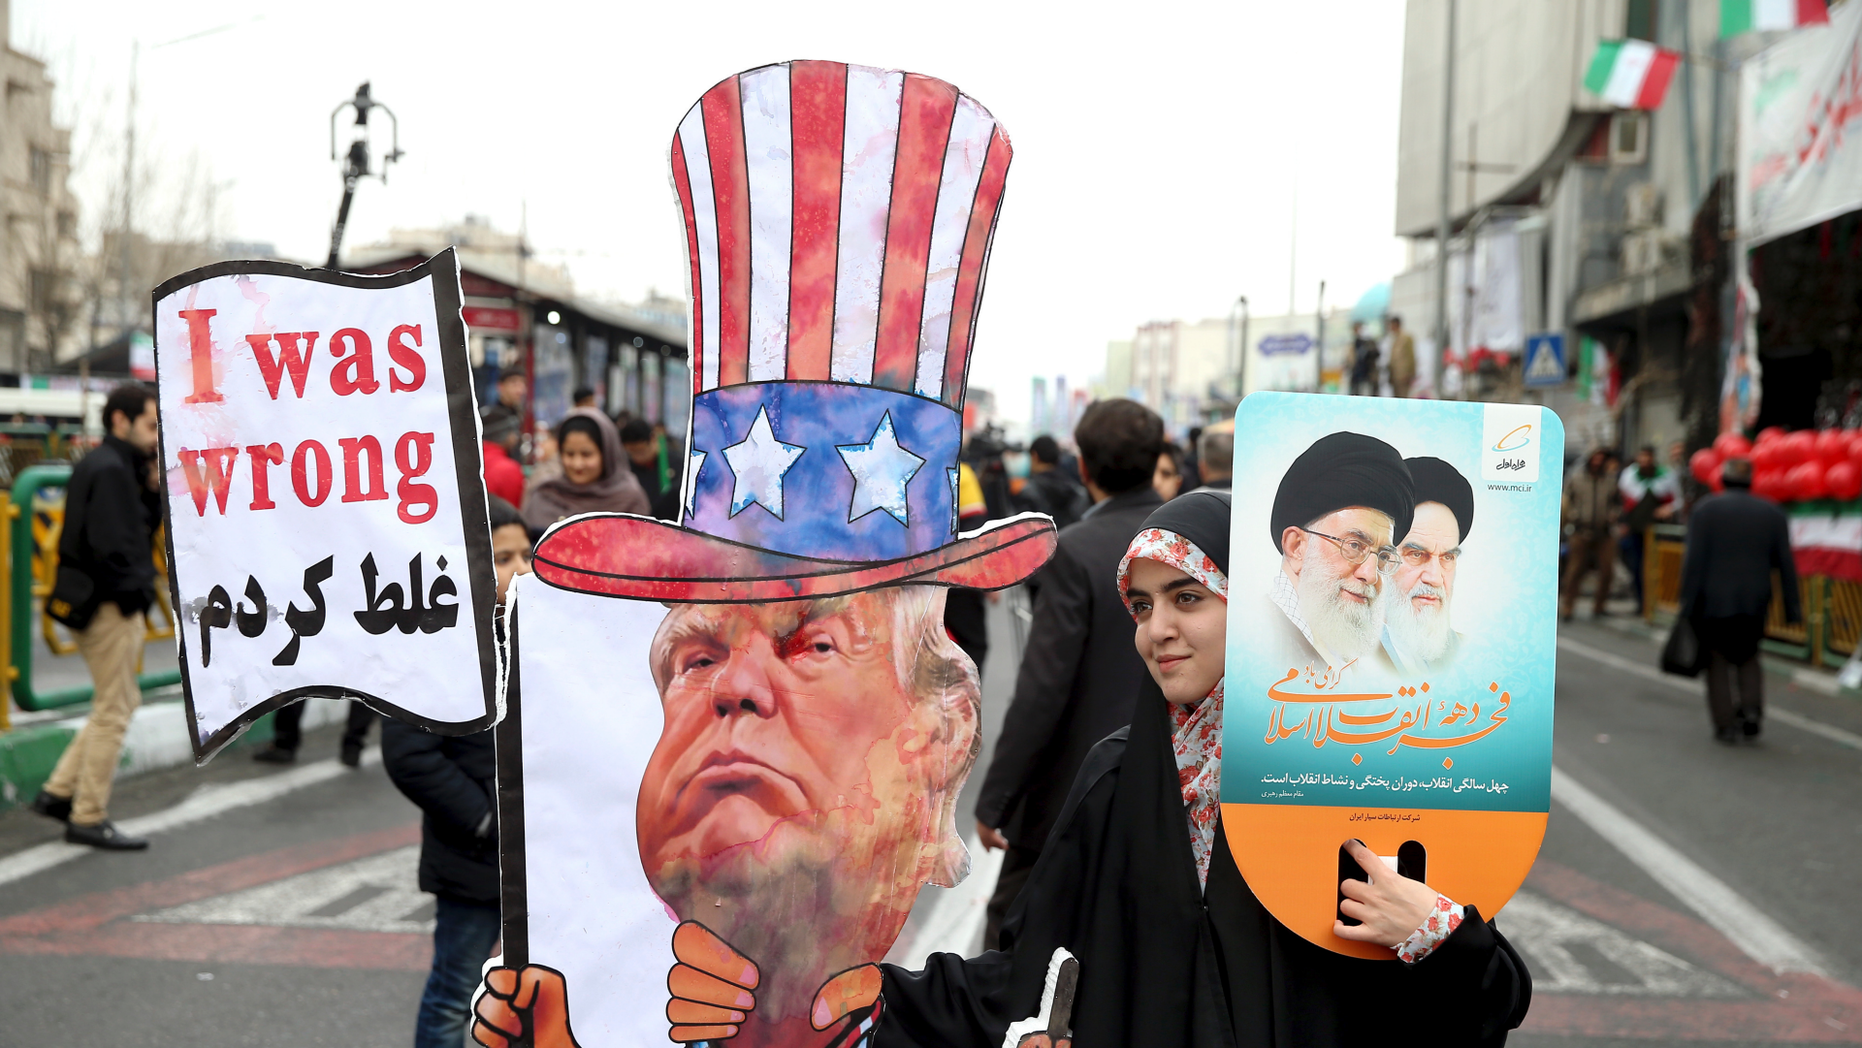 FILE - In a Feb. 11, 2019 file photo, an Iranian woman holds an effigy of US president Donald Trump, during a rally marking the 40th anniversary of the 1979 Islamic Revolution, in Tehran, Iran. Iranian President Hassan Rouhani is reportedly set to announce Wednesday, May 8, 2019, ways the Islamic Republic will react to continued U.S. pressure after President Donald Trump pulled America from Tehran's nuclear deal with world powers. (AP Photo/Ebrahim Noroozi, File)